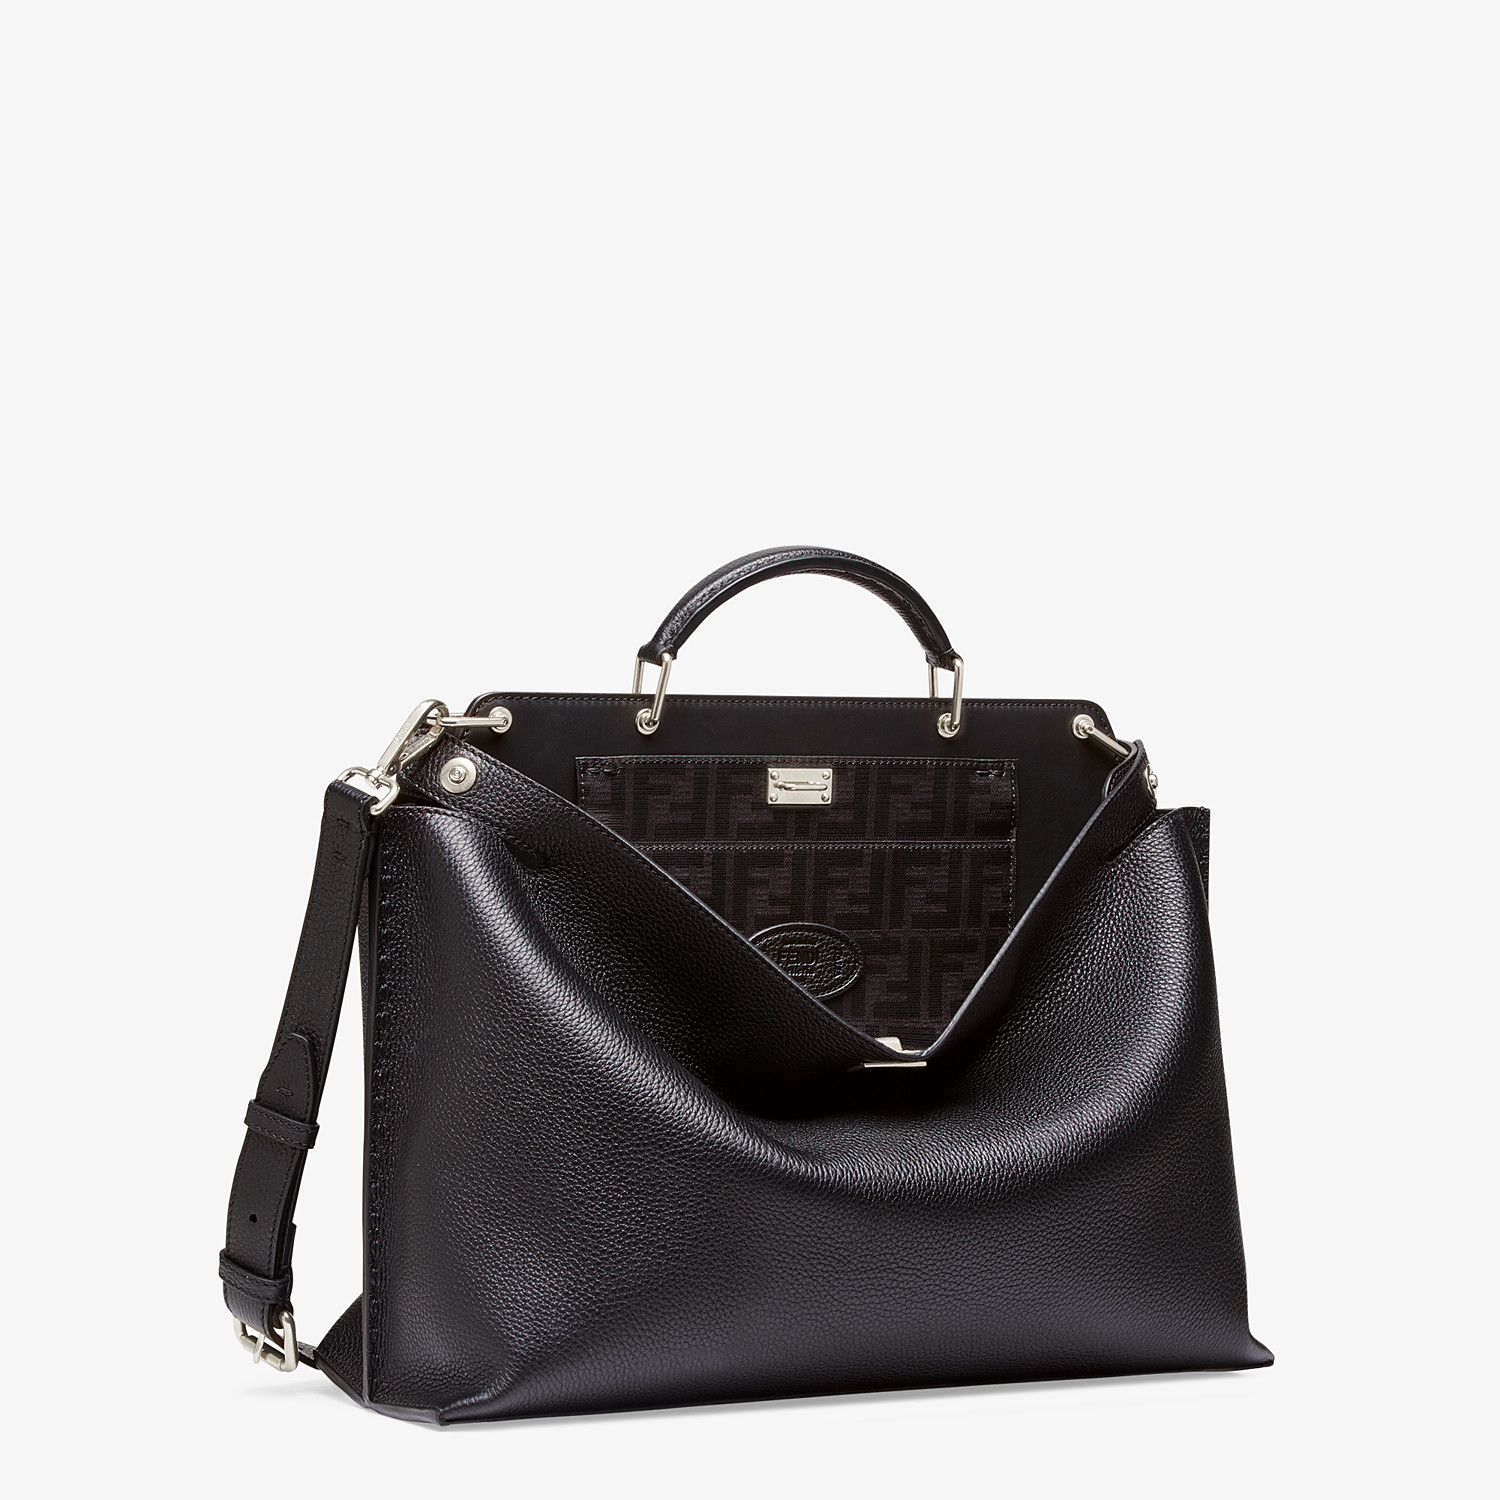 FENDI PEEKABOO ICONIC ESSENTIAL - Tasche aus Leder in Schwarz - view 2 detail